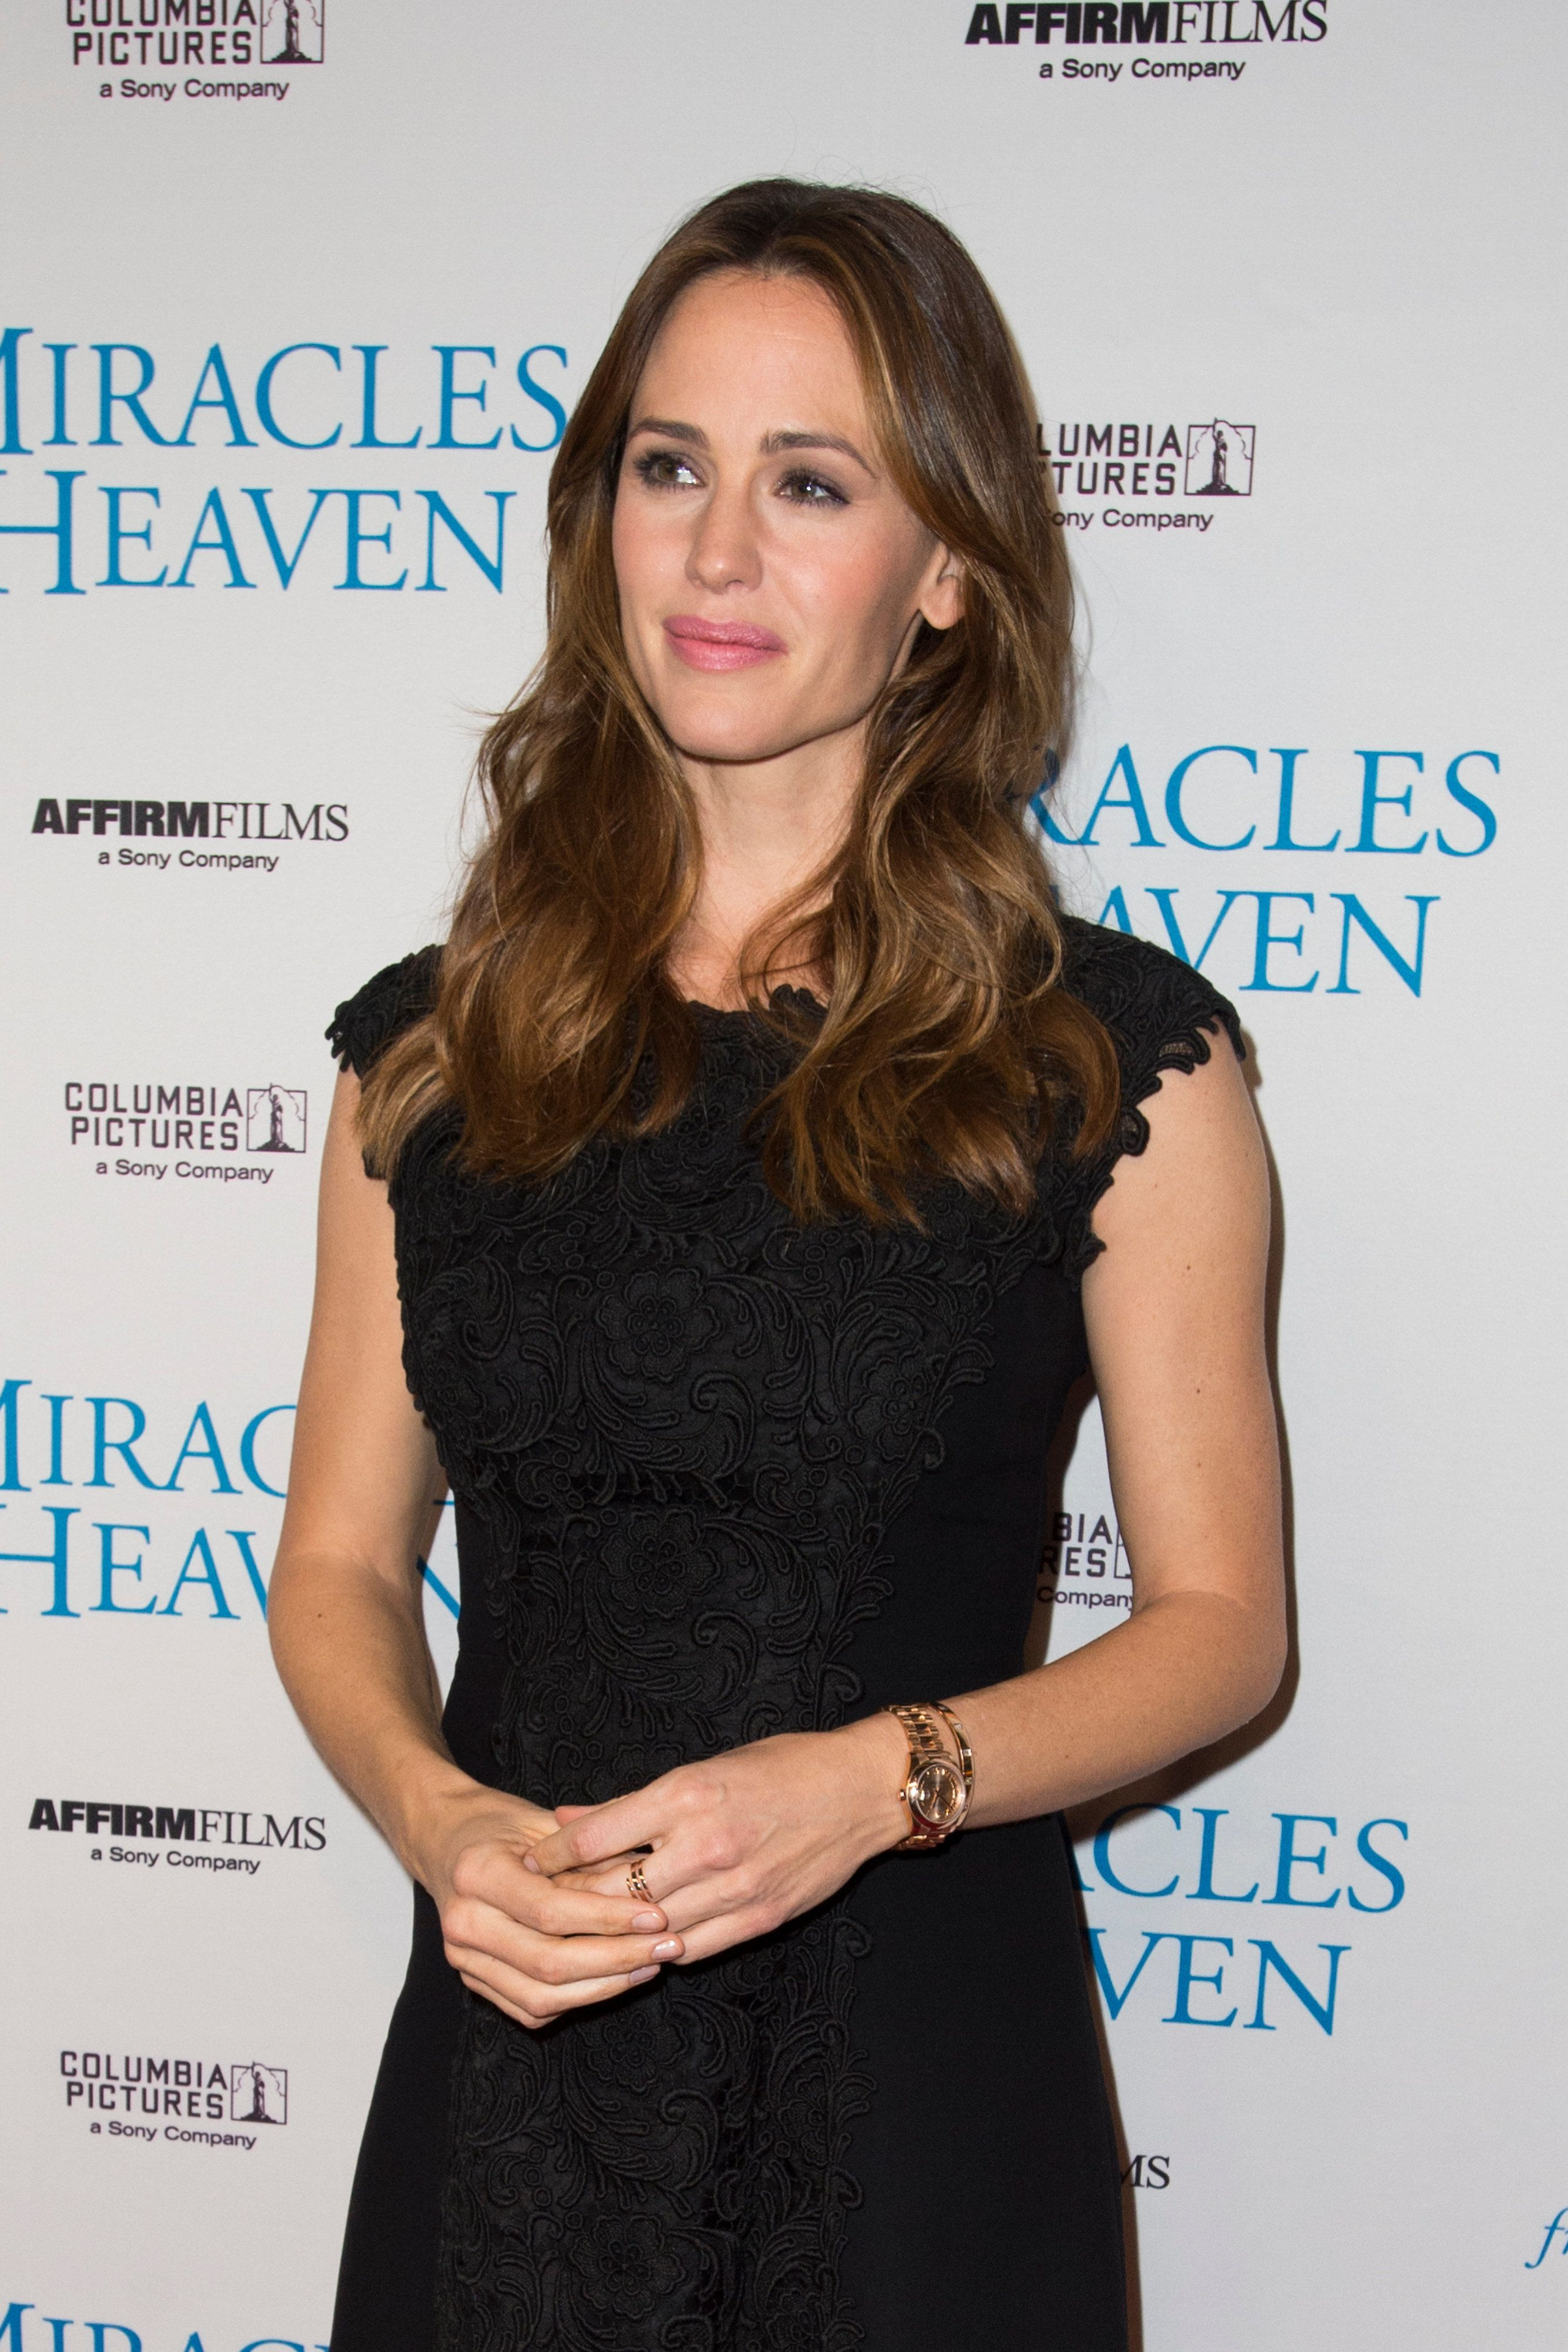 DALLAS, TX - FEBRUARY 21:  Jennifer Garner poses for a photo on the red carpet for the premiere of 'Miracles From Heaven' on February 21, 2016 in Dallas, Texas.  (Photo by Cooper Neill/Getty Images for Allied Integrated Marketing)